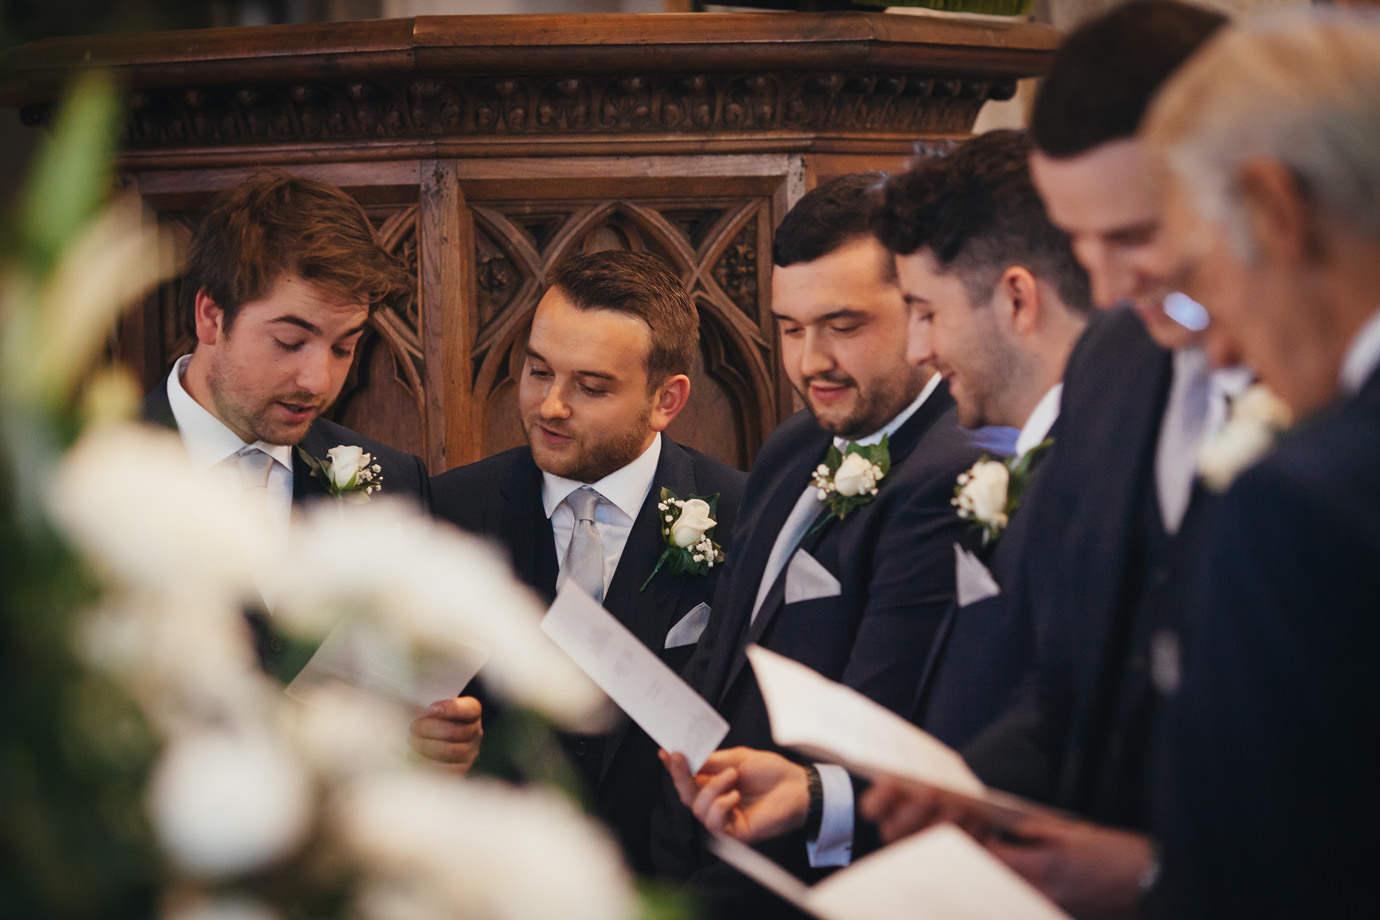 Grooms party - East Riding wedding photography